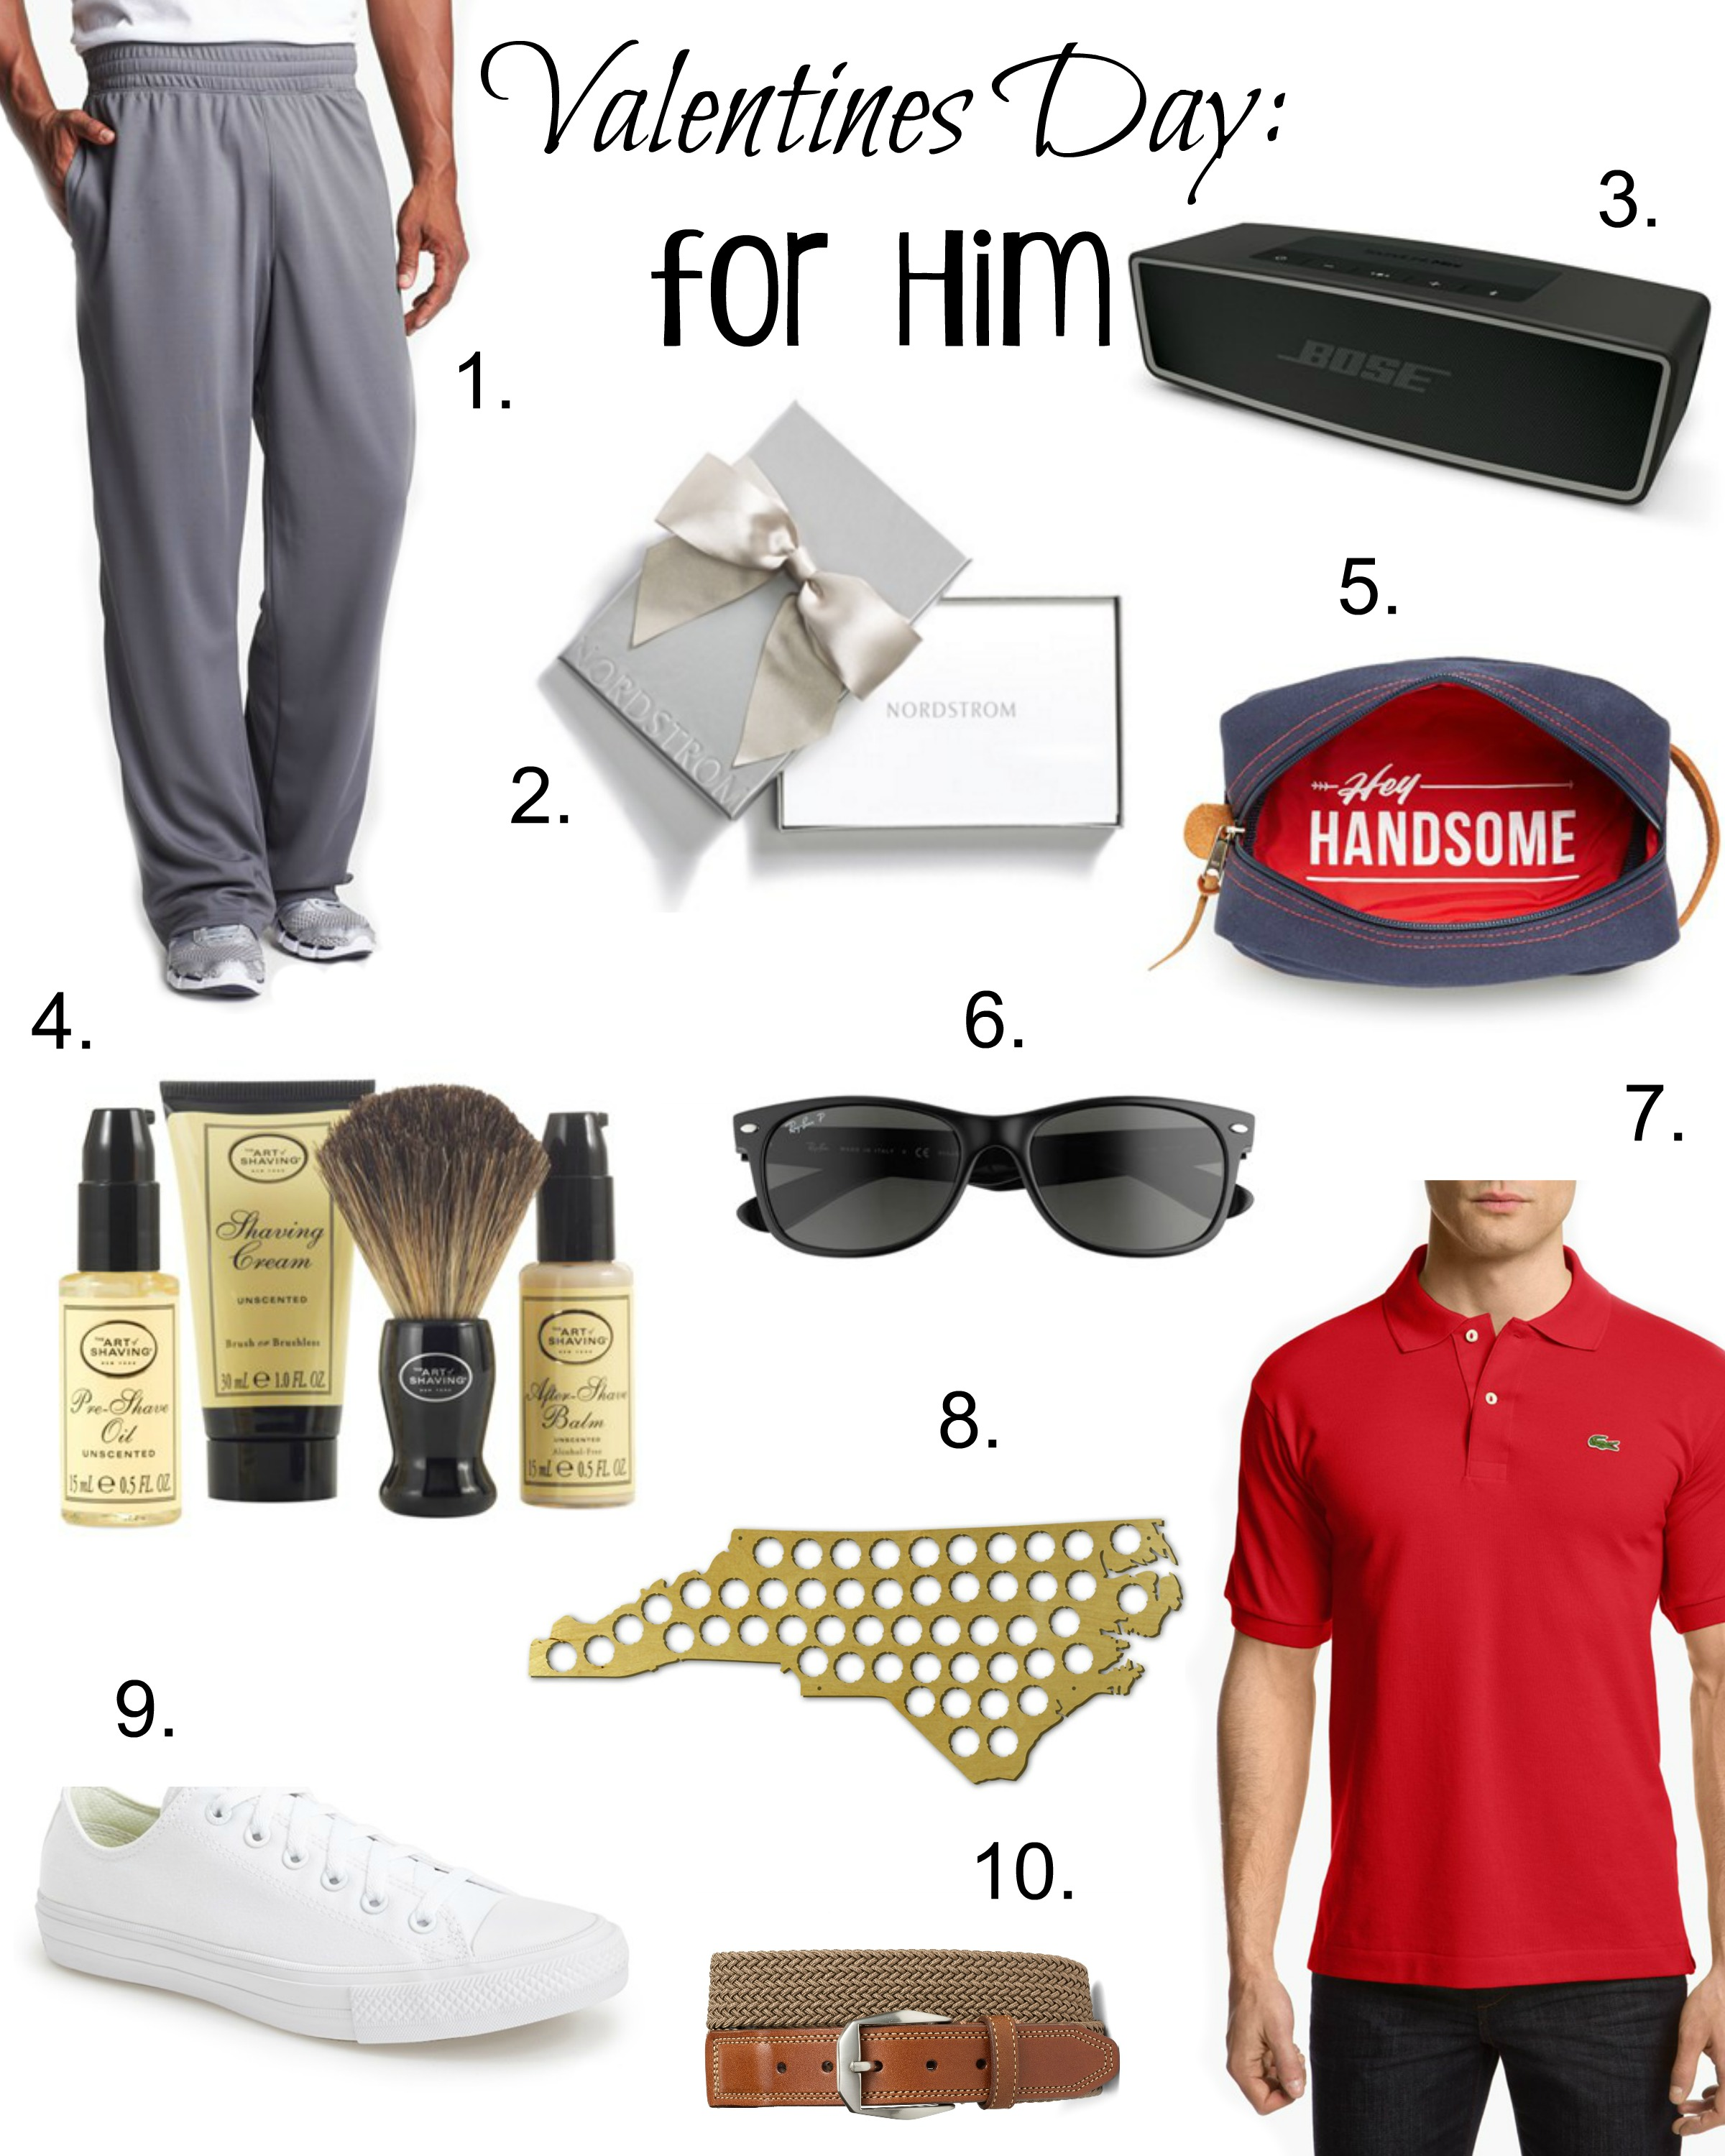 10 Valentines Day Gifts For Him | Coffee Beans and Bobby Pins